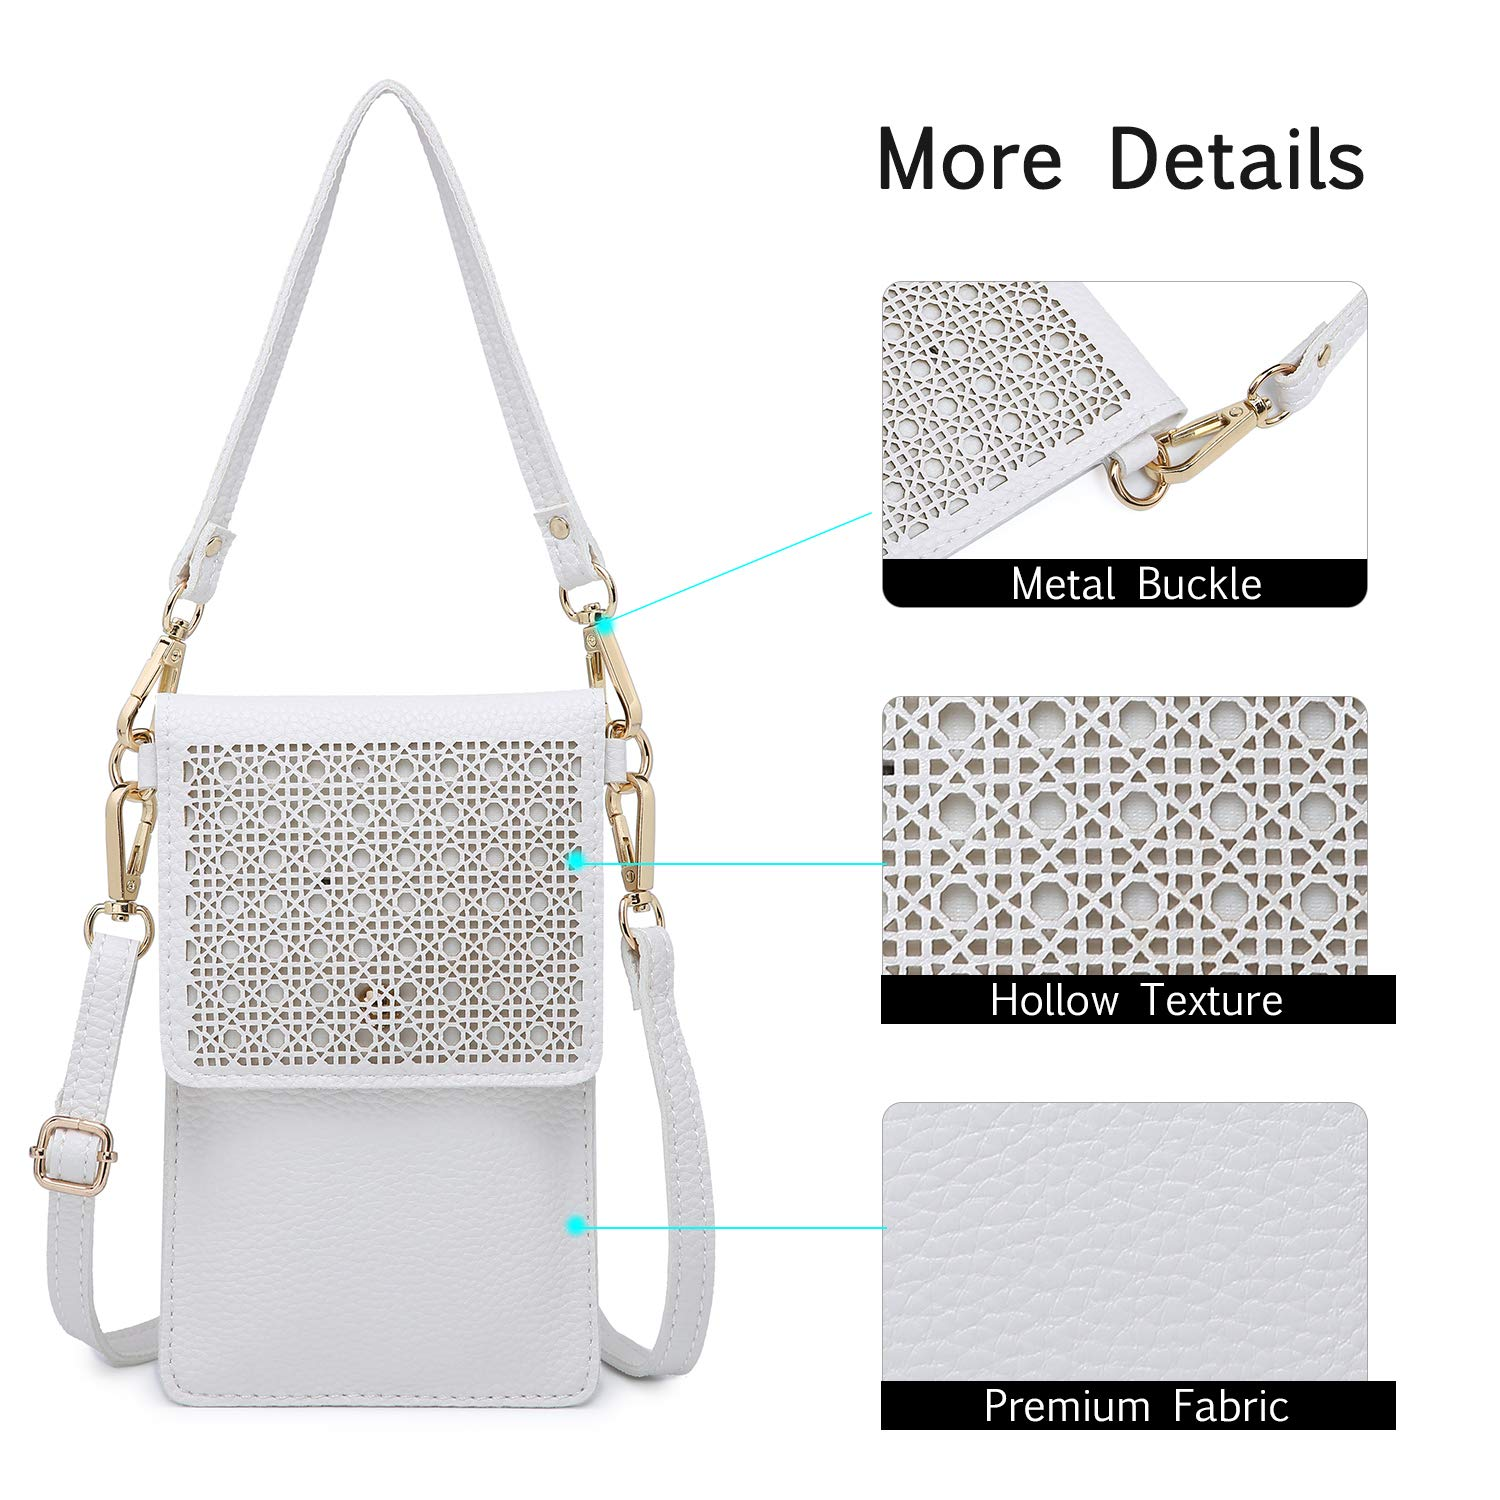 8c96c491f22f seOSTO Small Crossbody Bag Cell Phone Purse Wallet with 2 Shoulder Strap  Handbag for Women Girls (White) - AAC-Bag-apricot   Crossbody Bags    Clothing